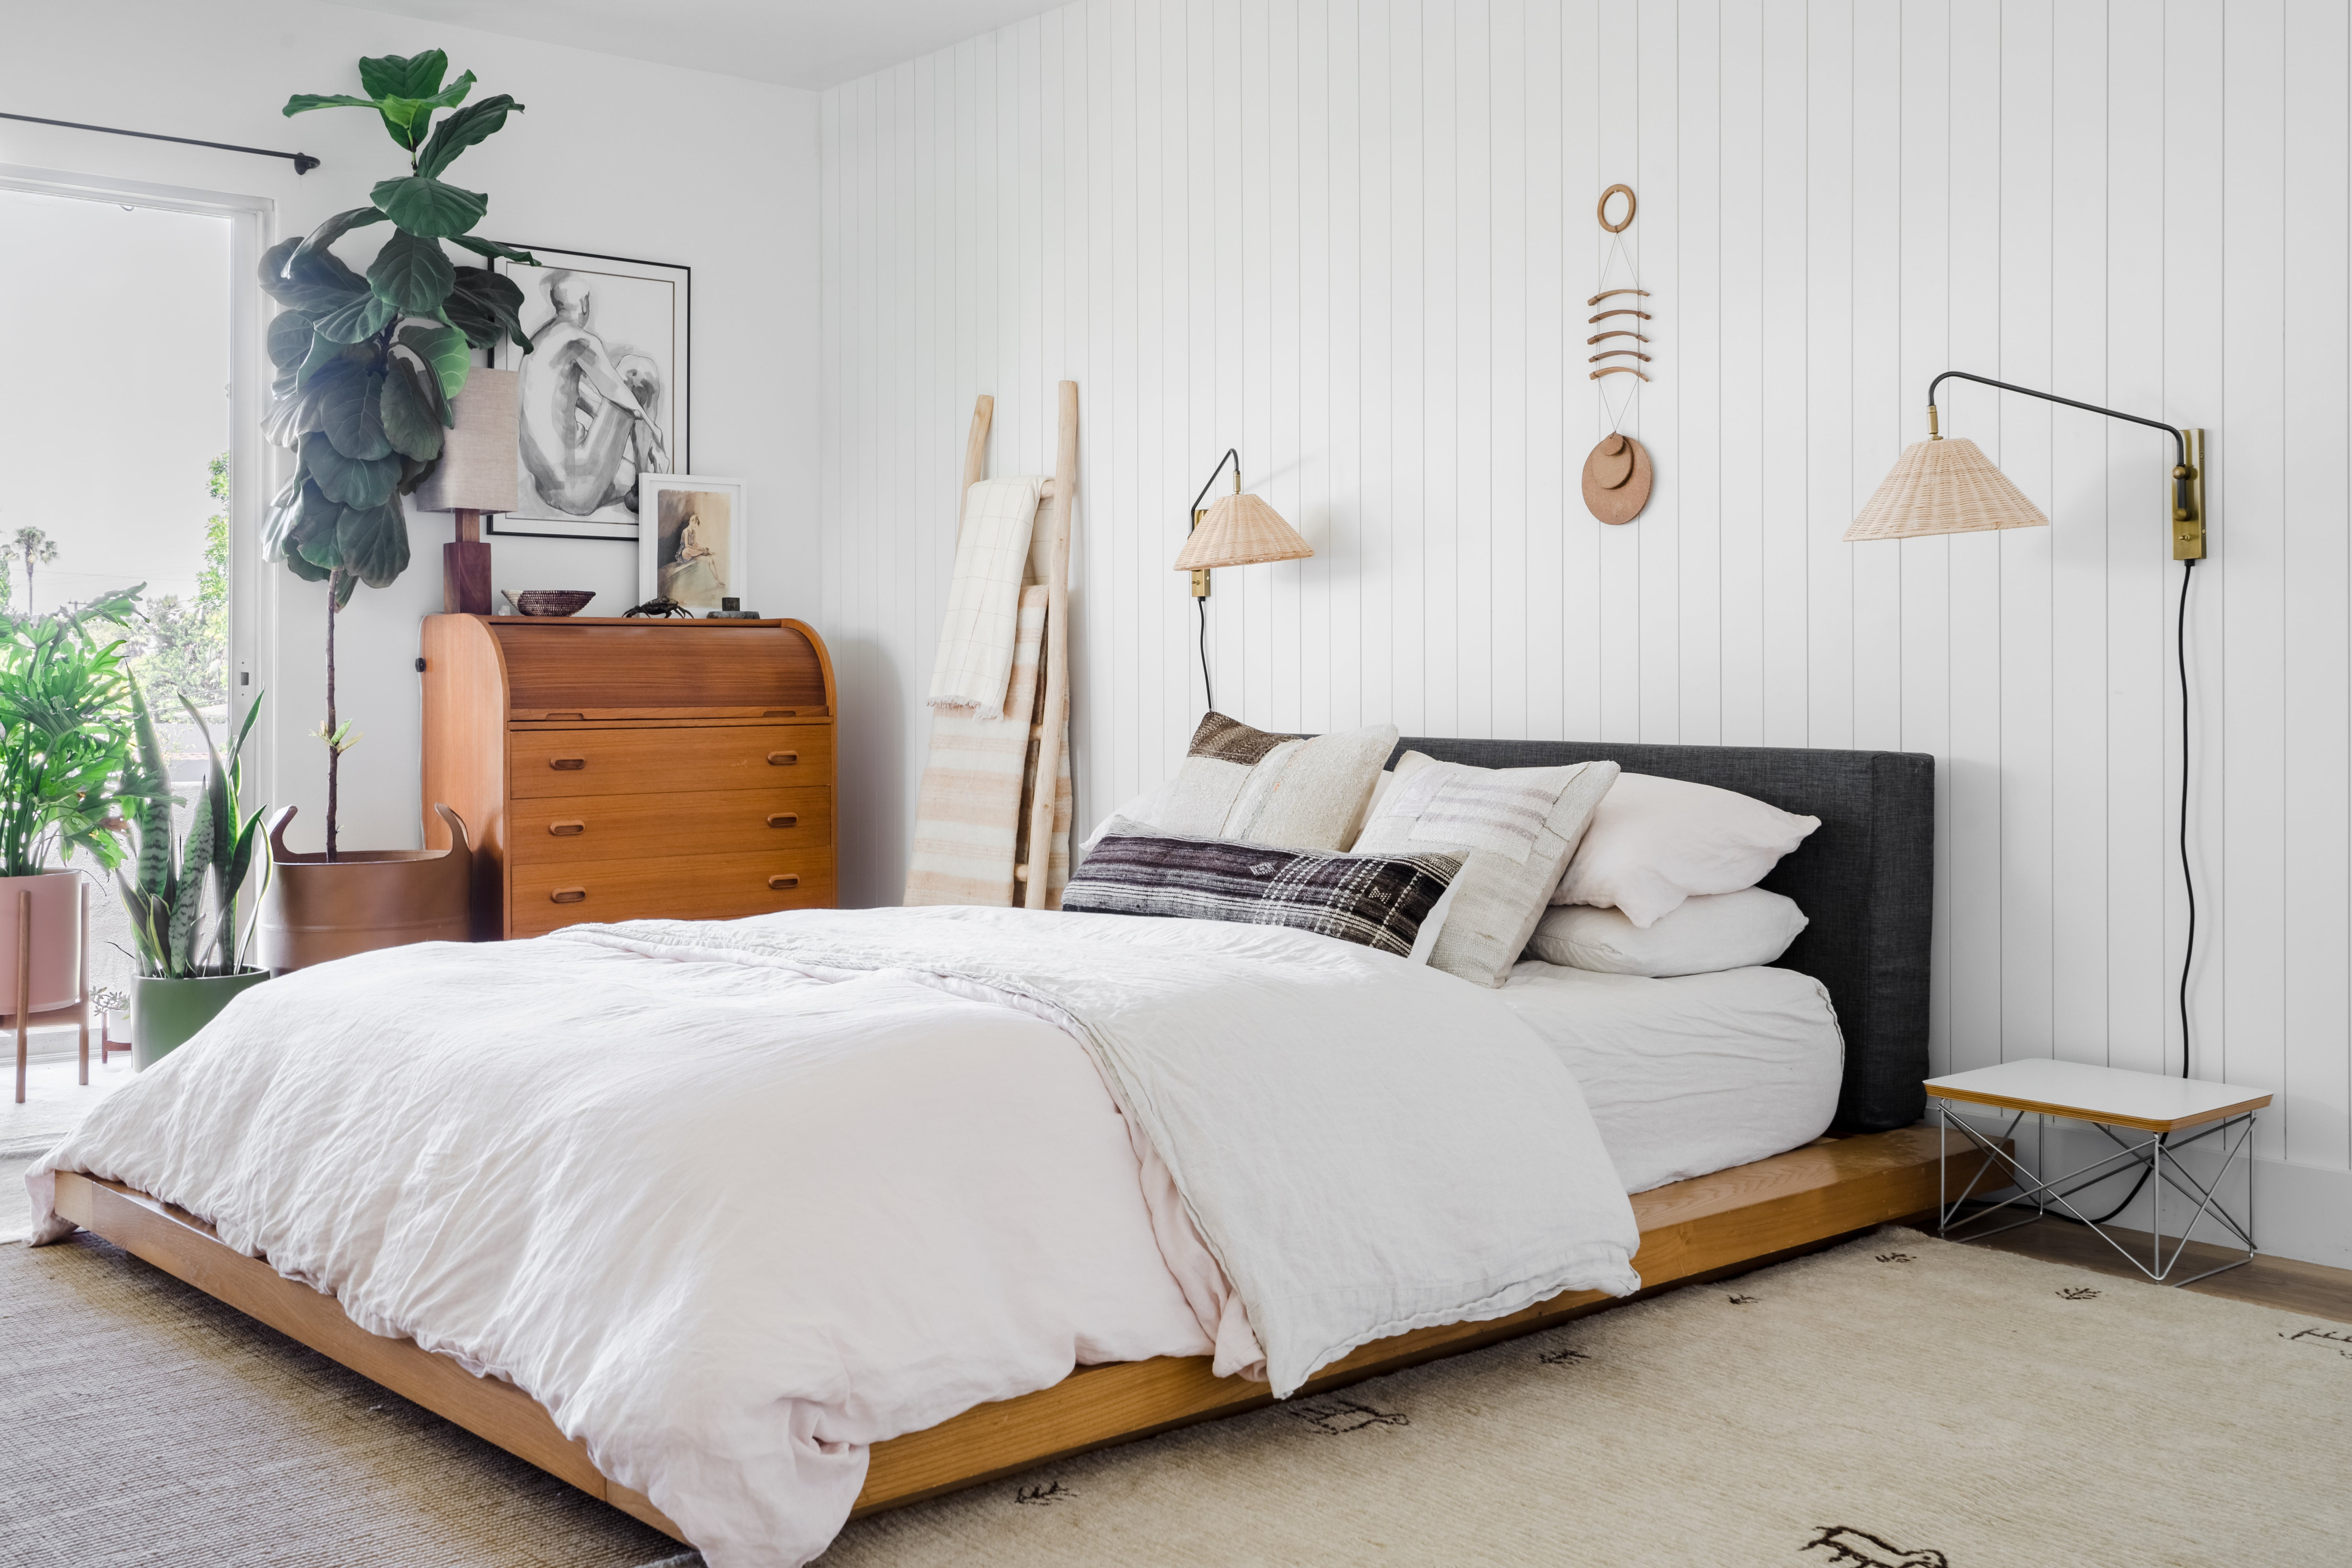 Bedroom with shiplap walls and rattan sconces